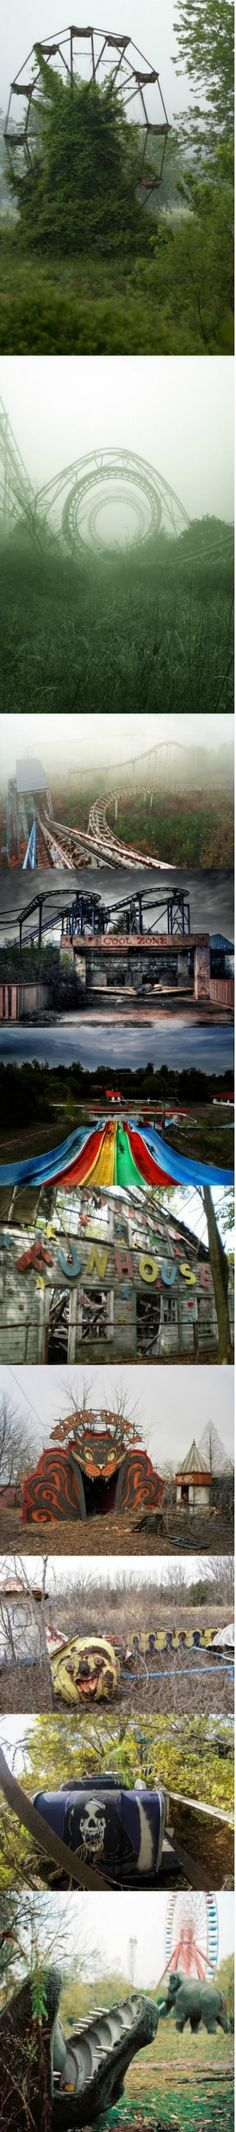 Creepy and deserted amusement parks